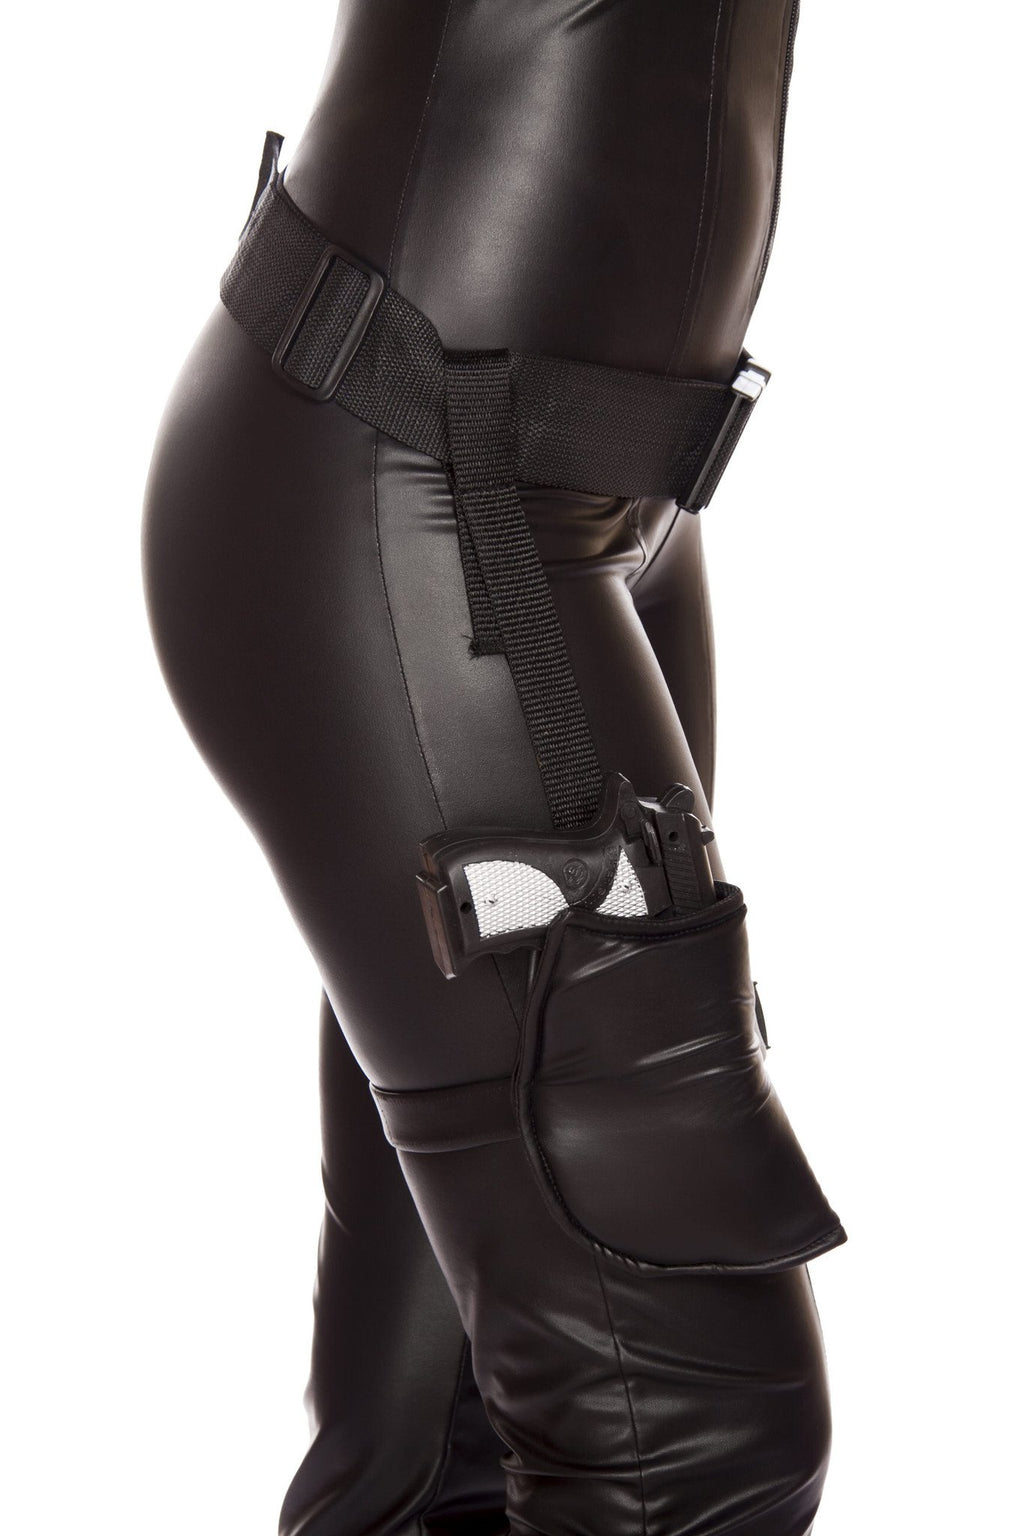 Leg Holster with Connected Belt (Gun Not Included)